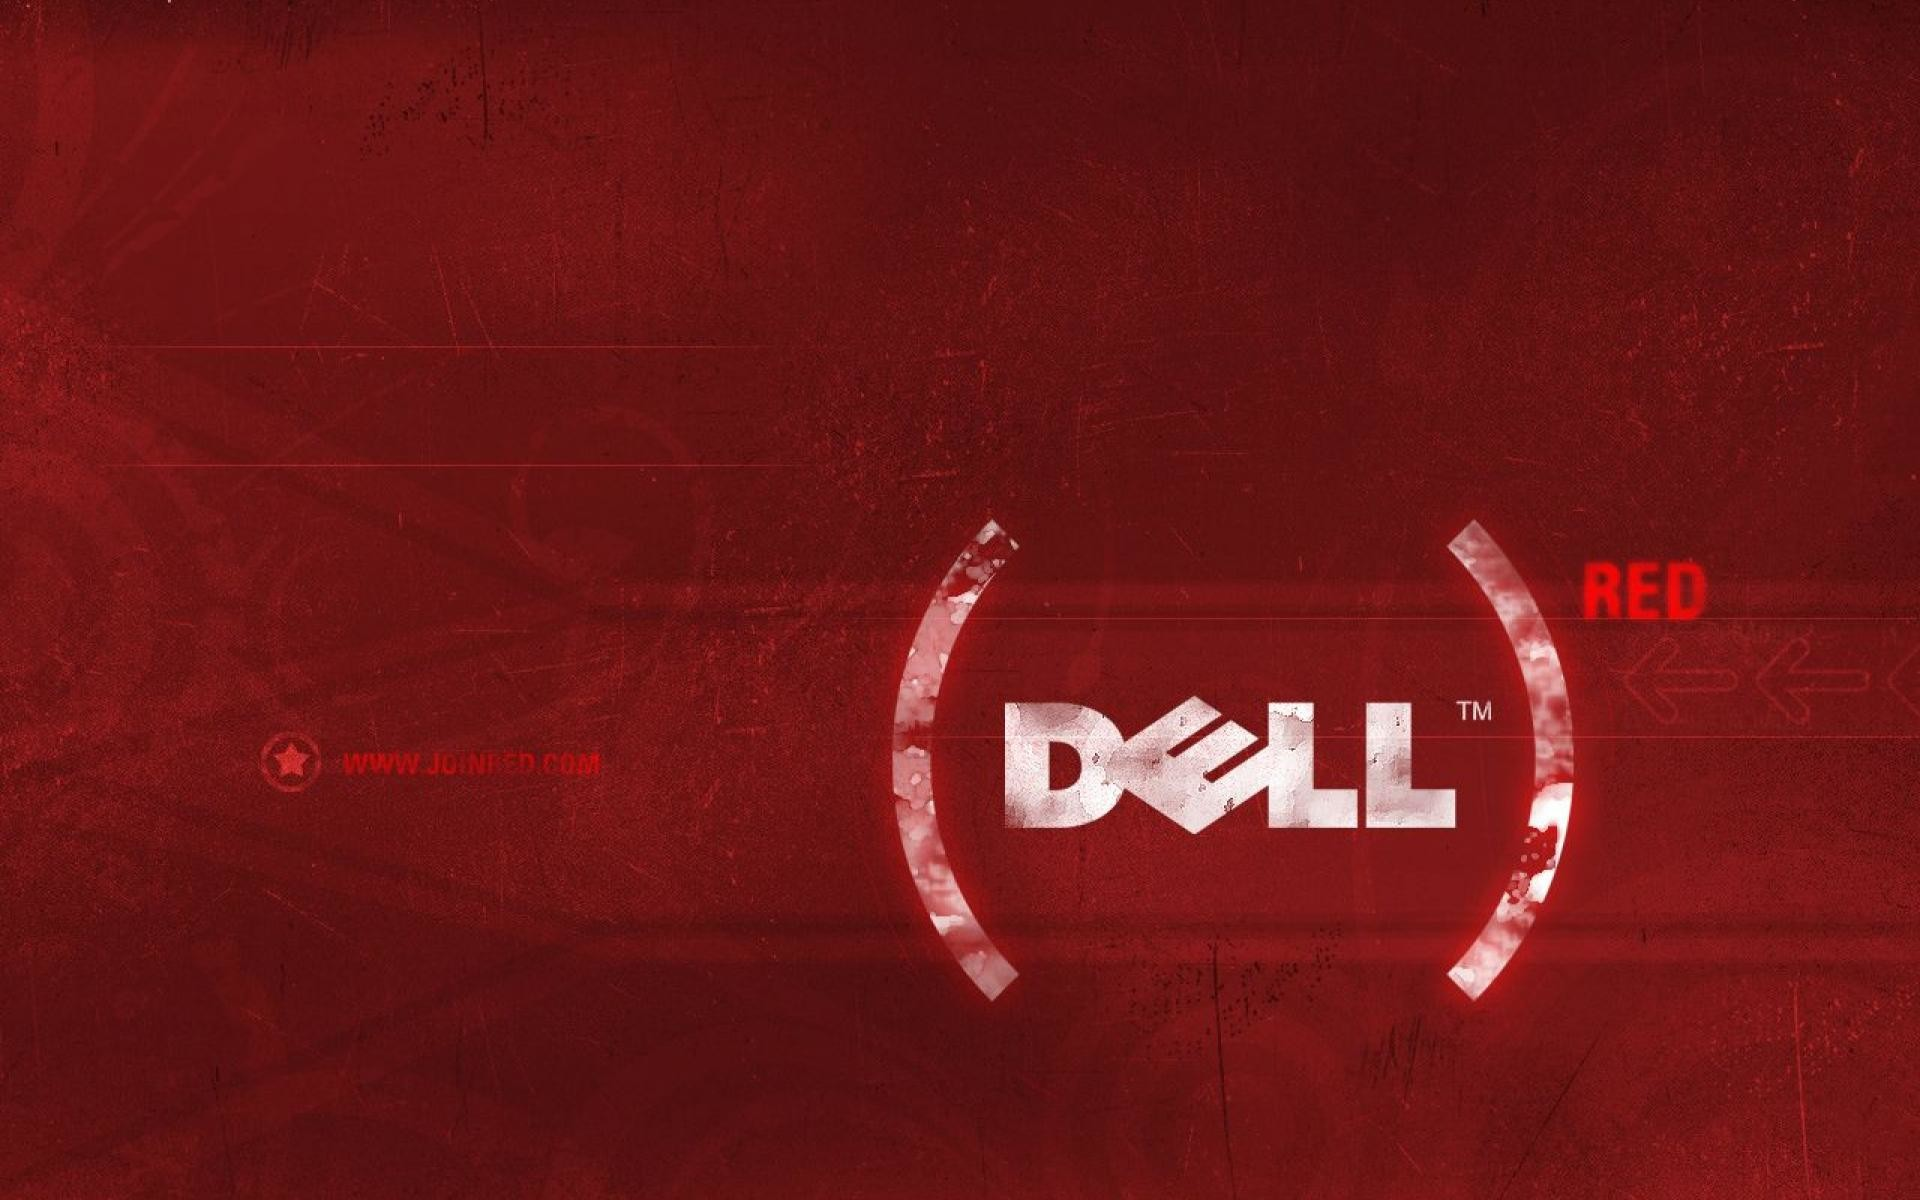 1920x1200 Dell XPS Red Label Wallpaper